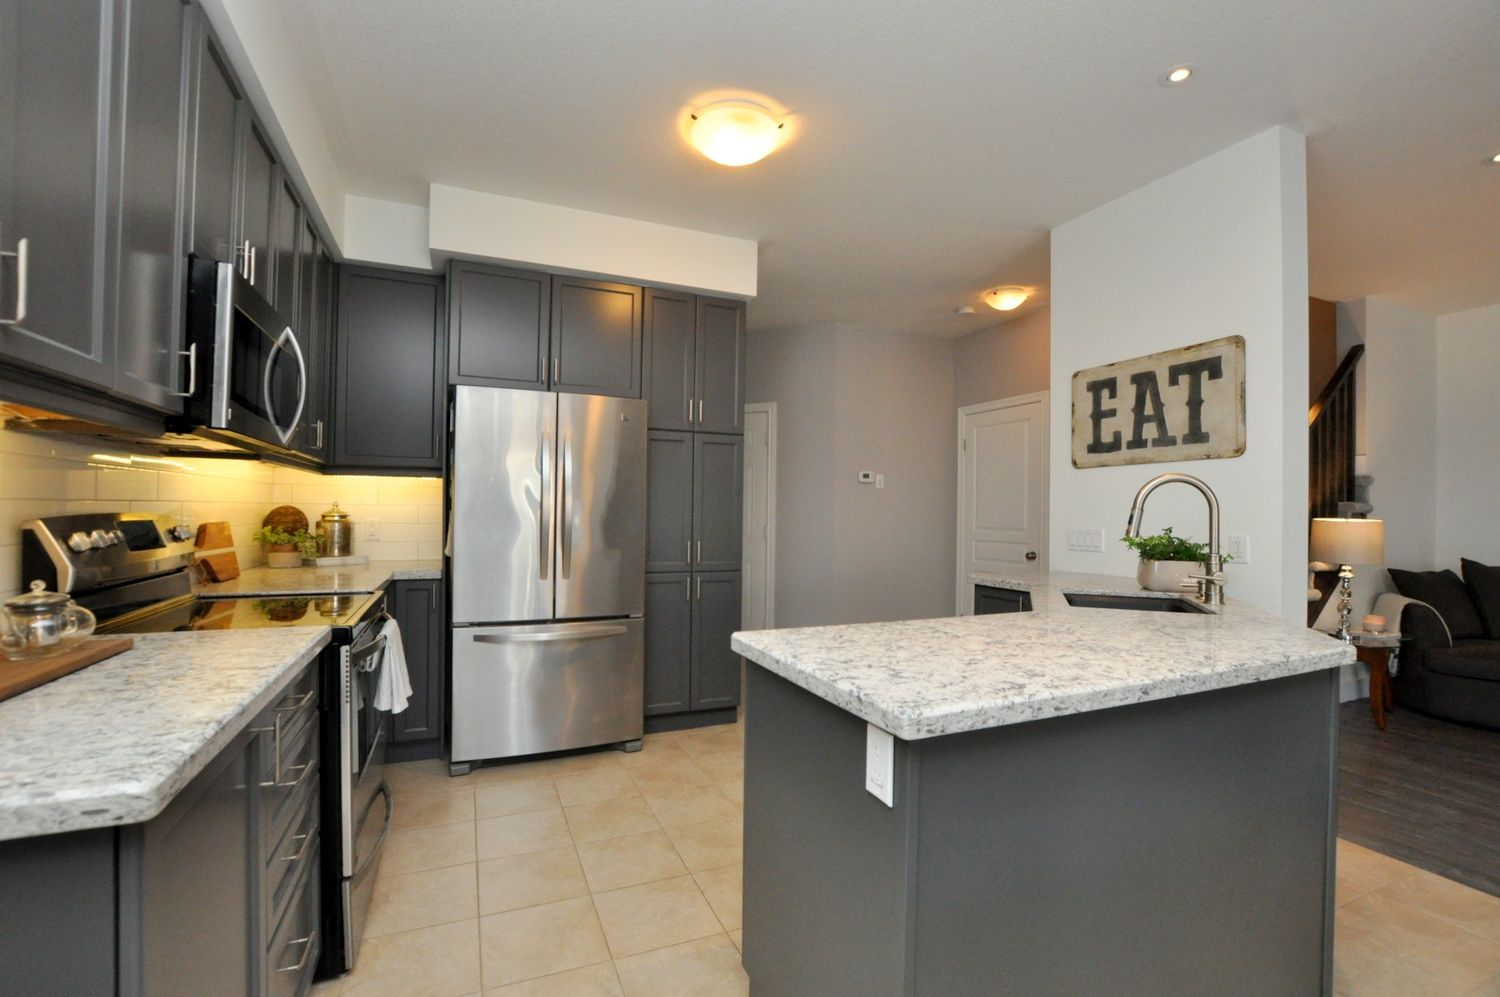 Including Expansive Kitchen Cabinet And Counter Space Breakfast